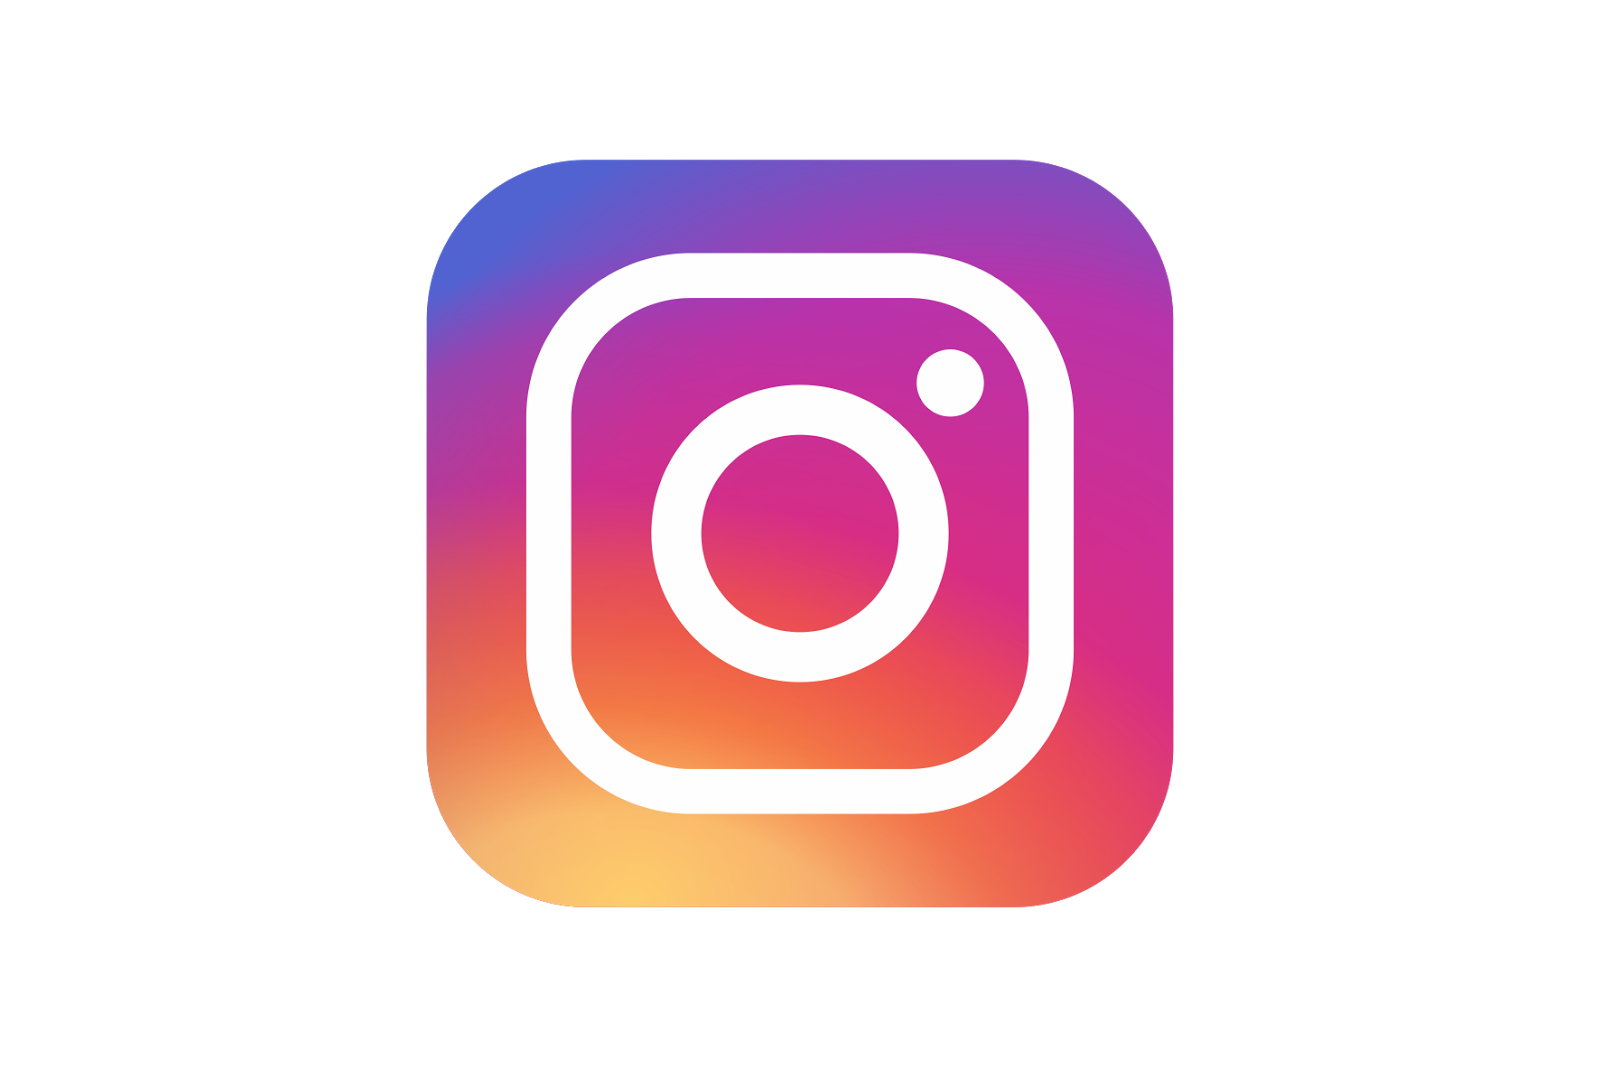 Logo Instagram Computer Icons Camera.